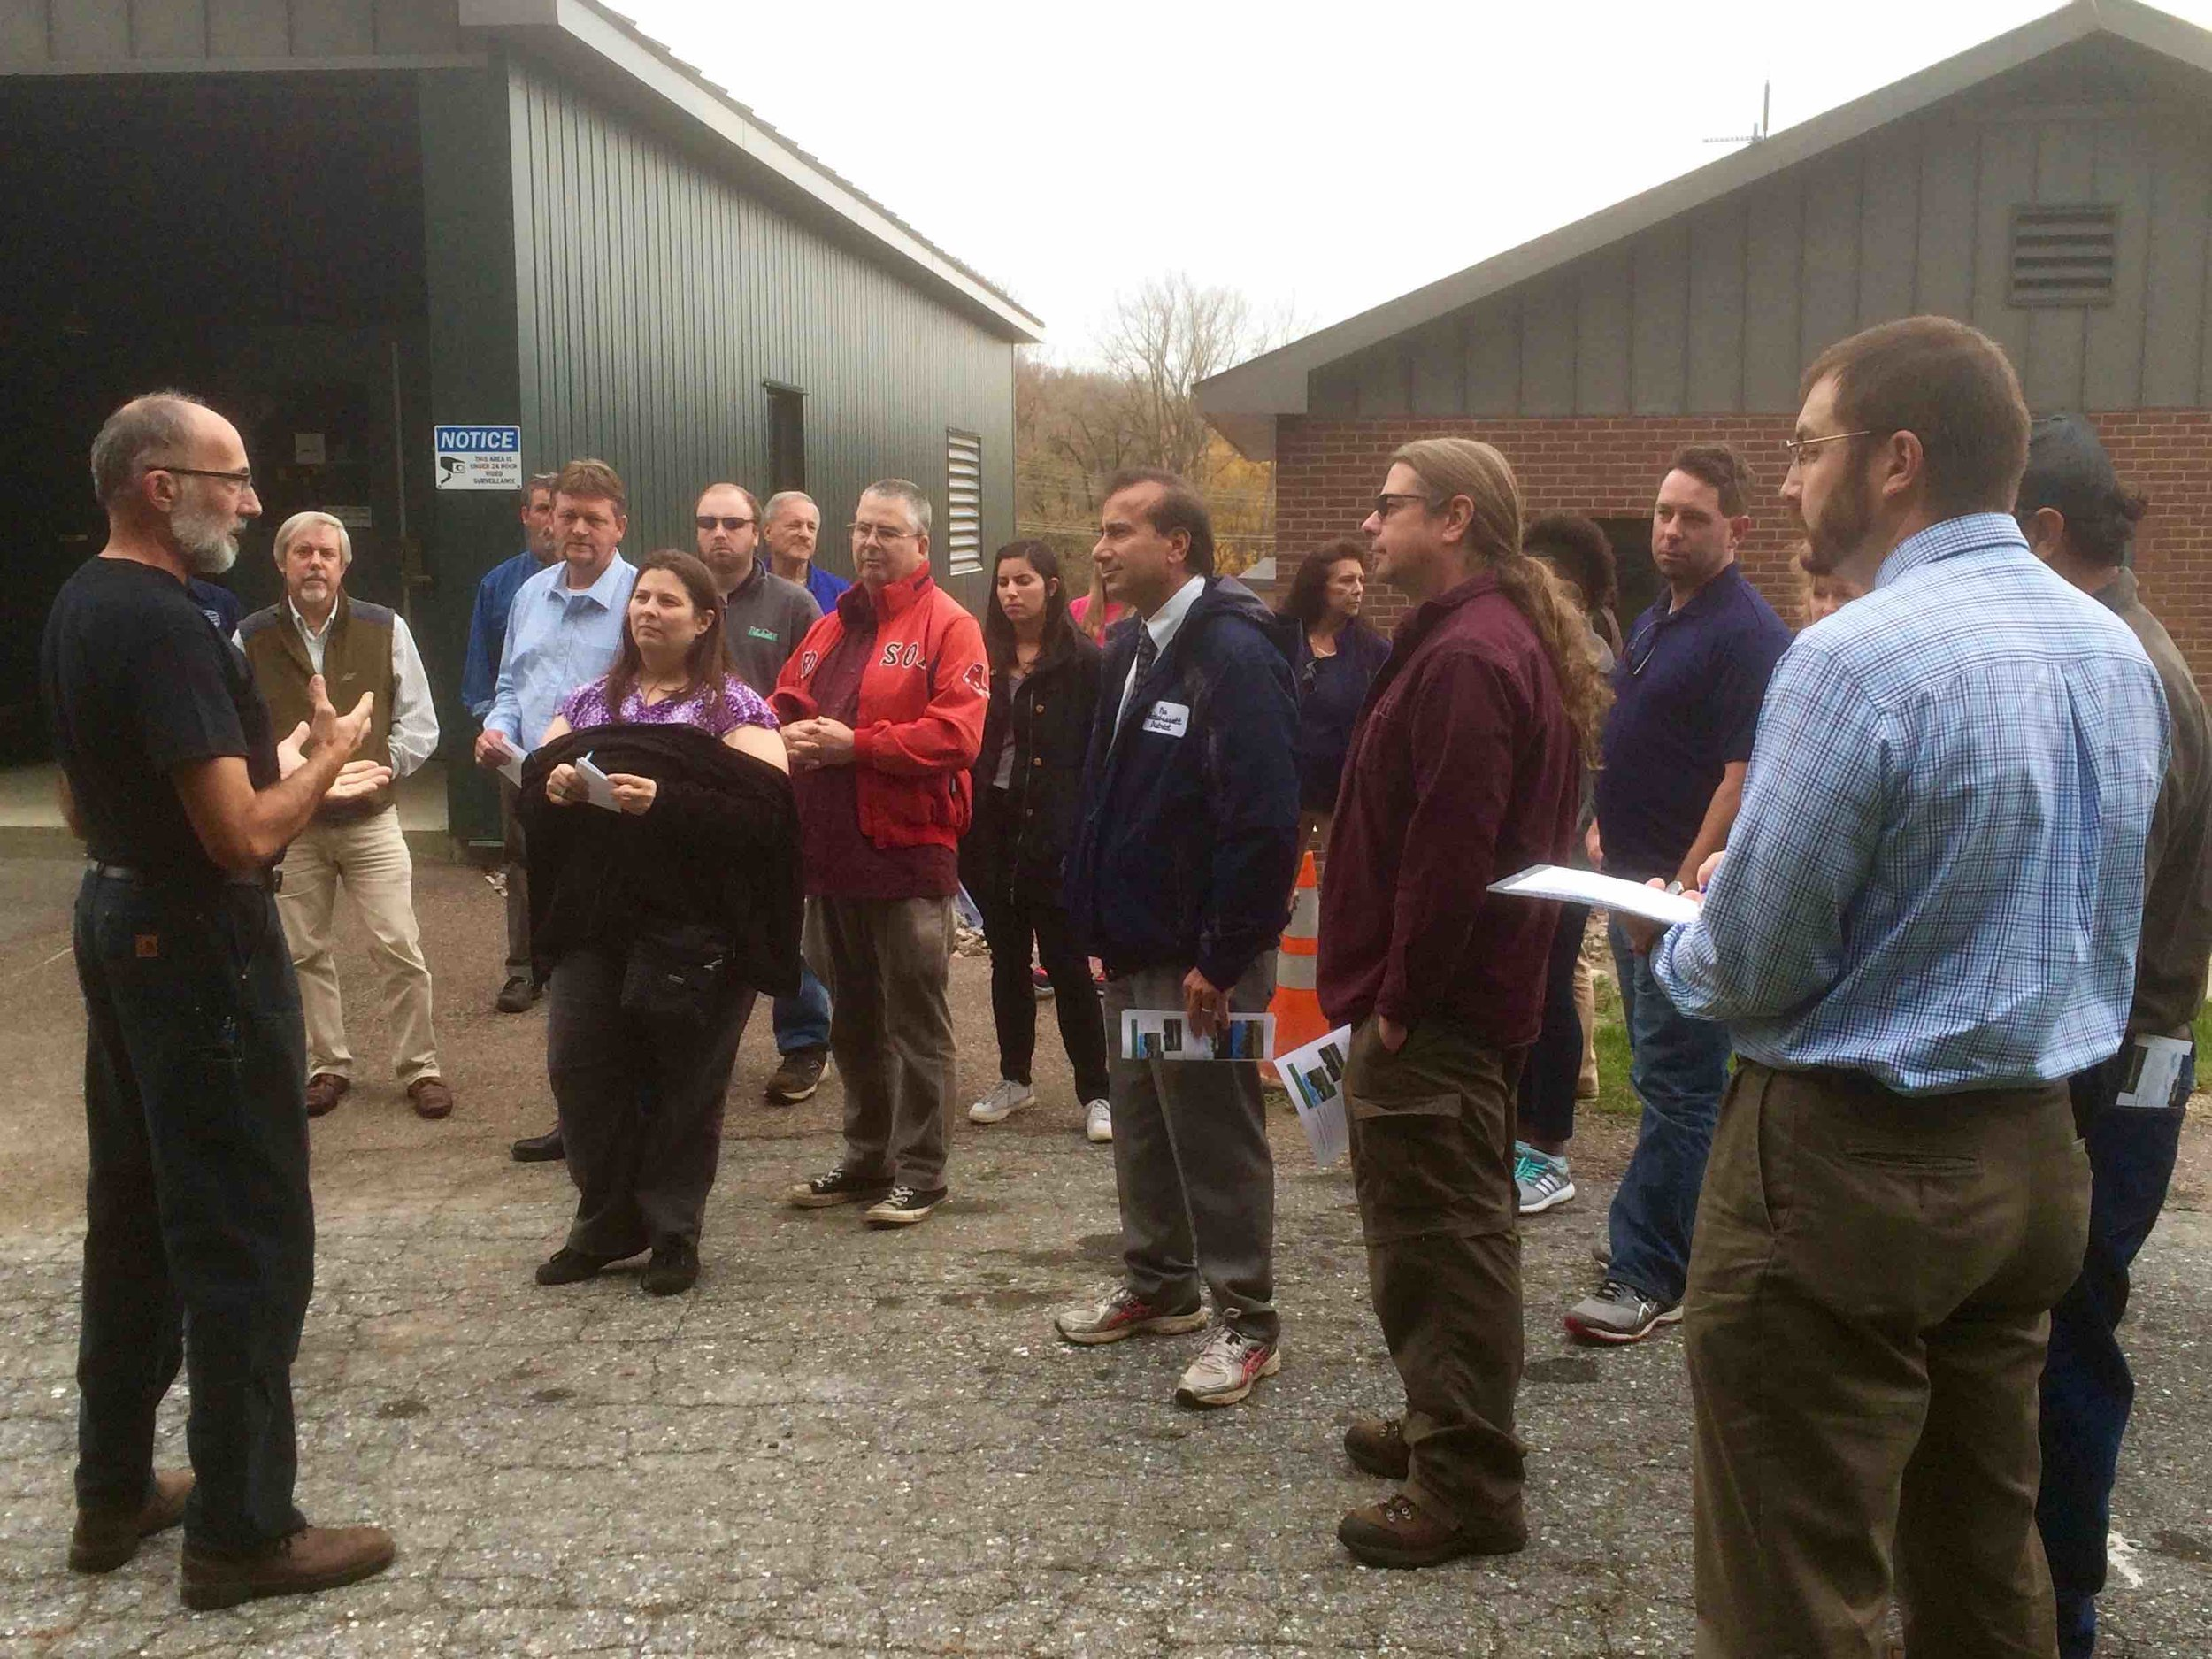 Jim Jutras (left) leads the tour at the Essex Junction WRRF.